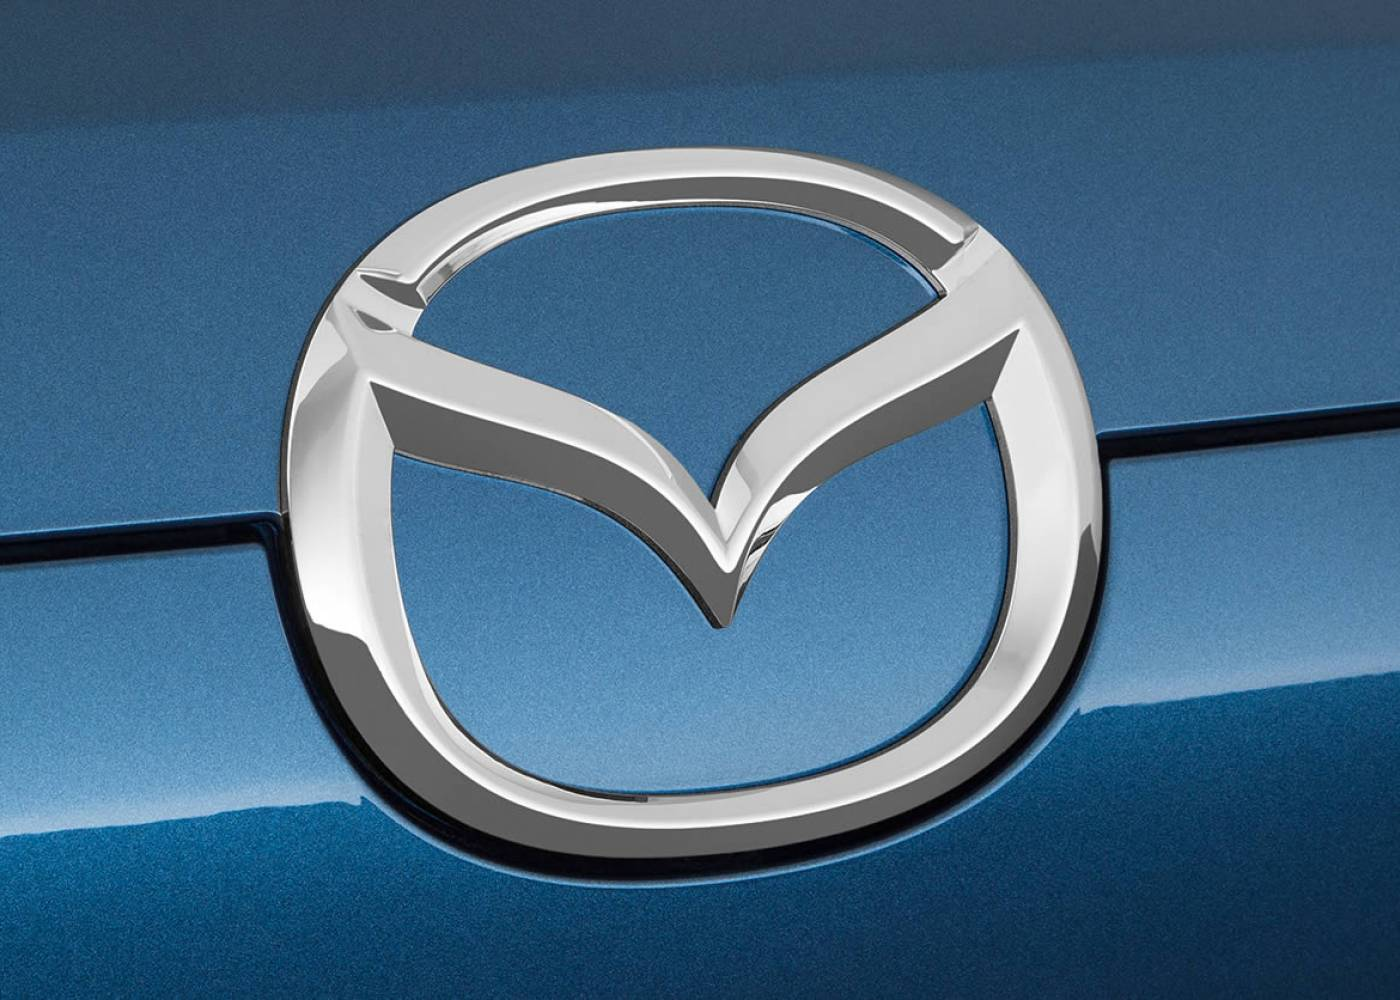 Mazda canada best new car deals offers leasecosts canada biocorpaavc Choice Image